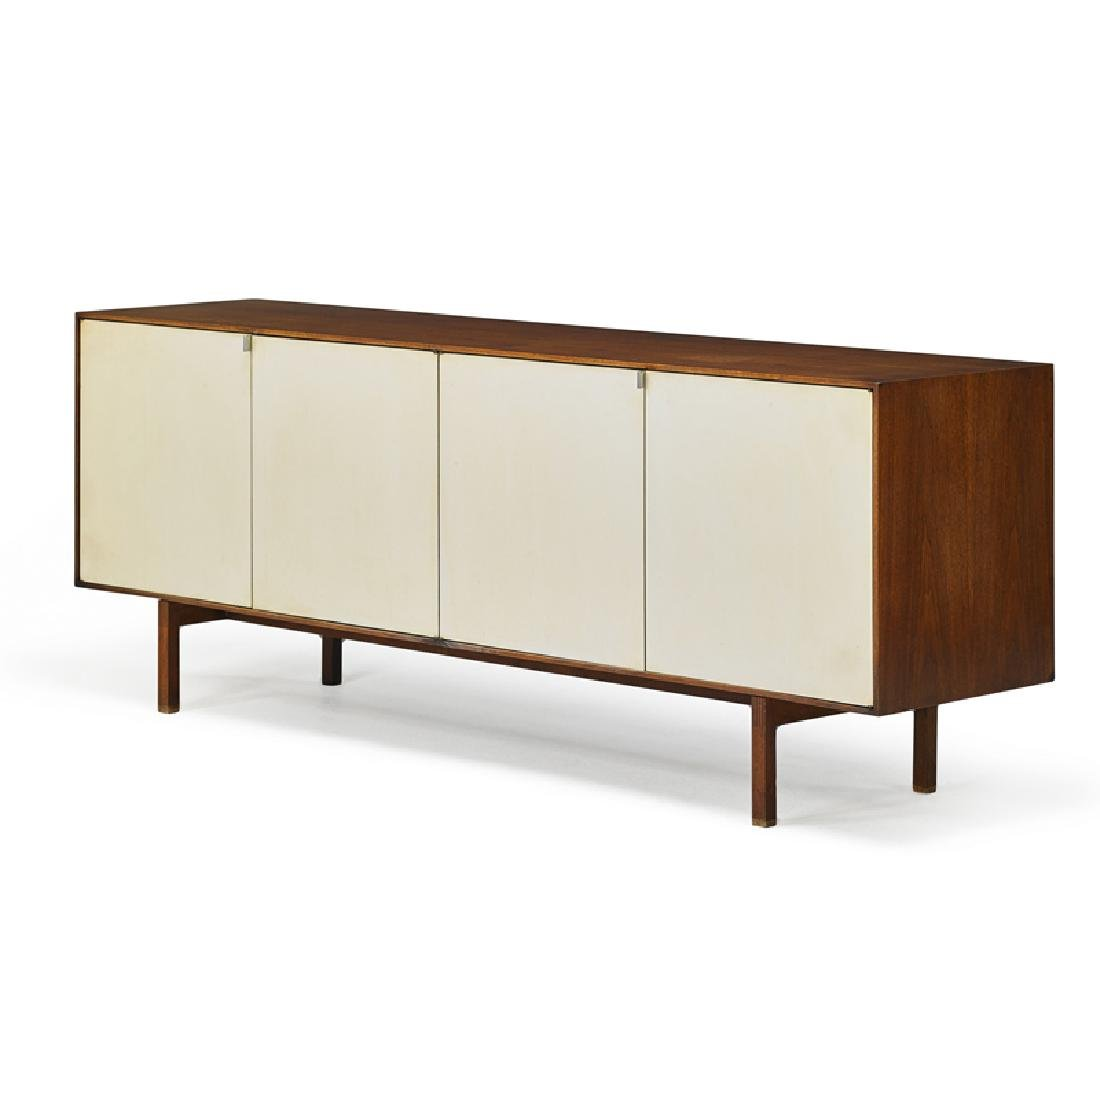 FLORENCE KNOLL Cabinet - 3